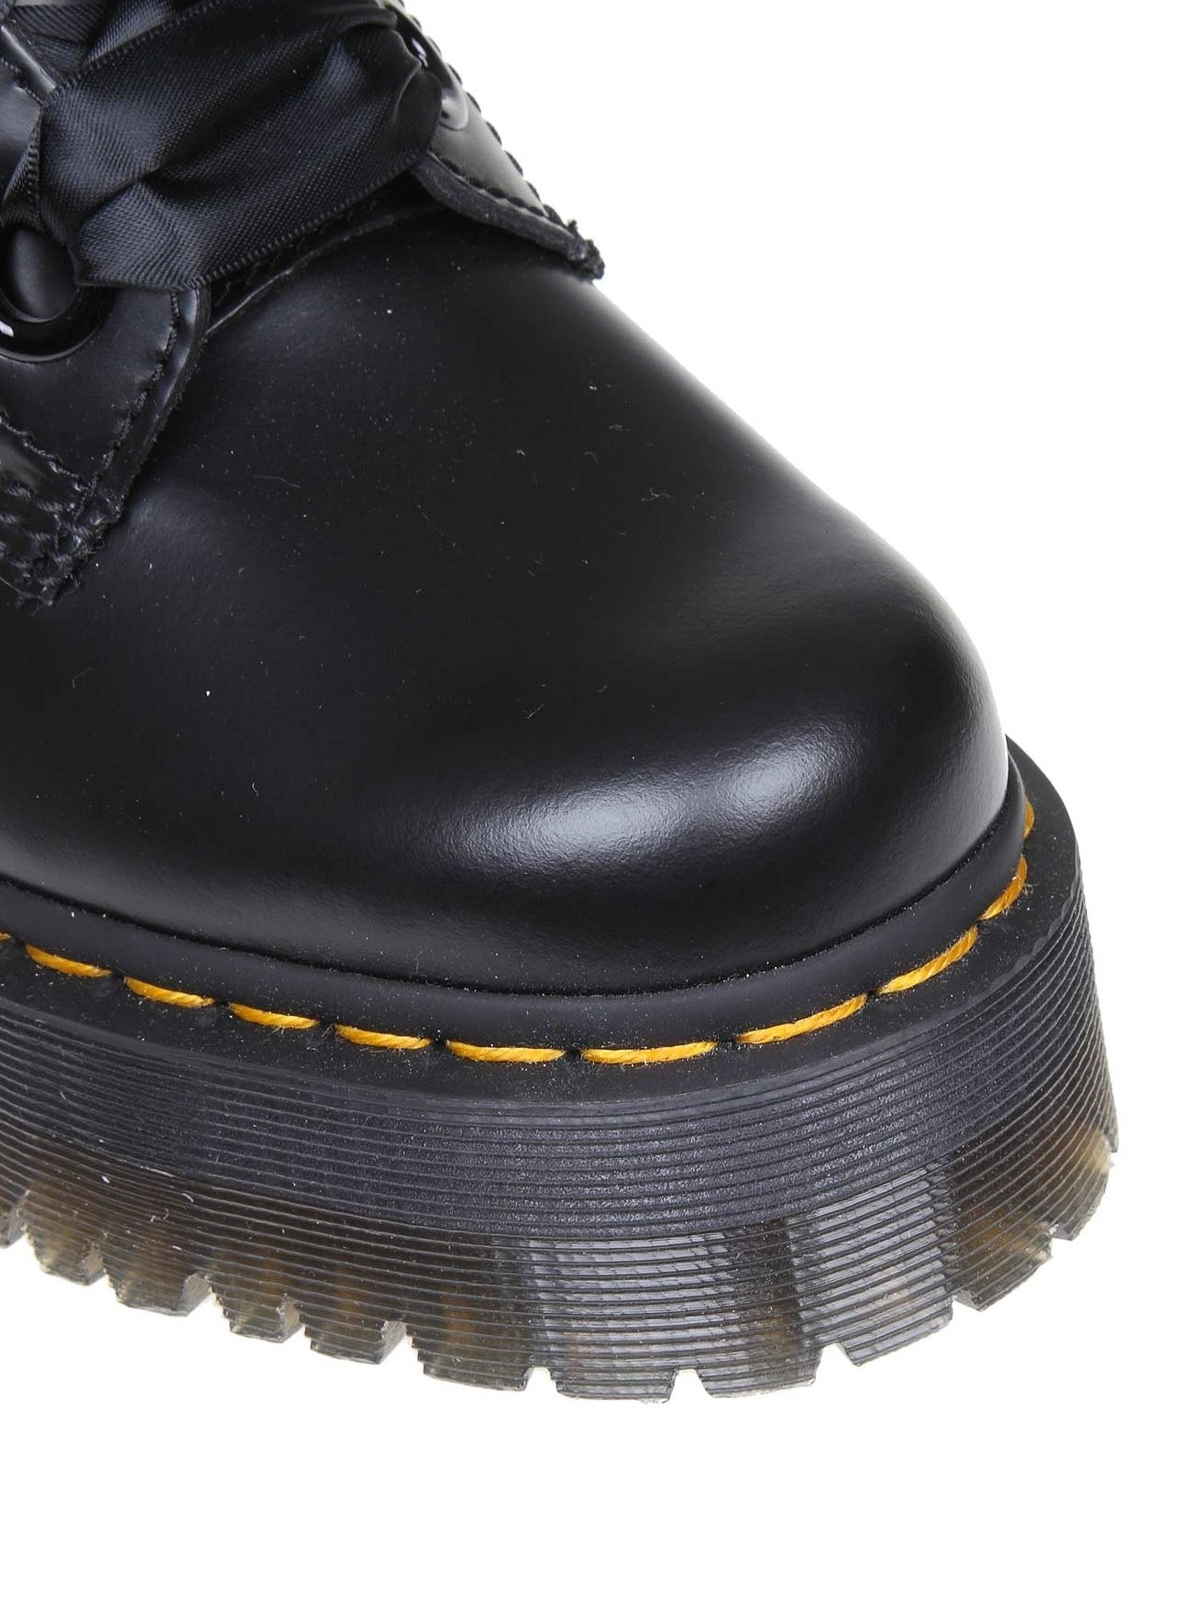 Dr. Martens - Molly leather booties